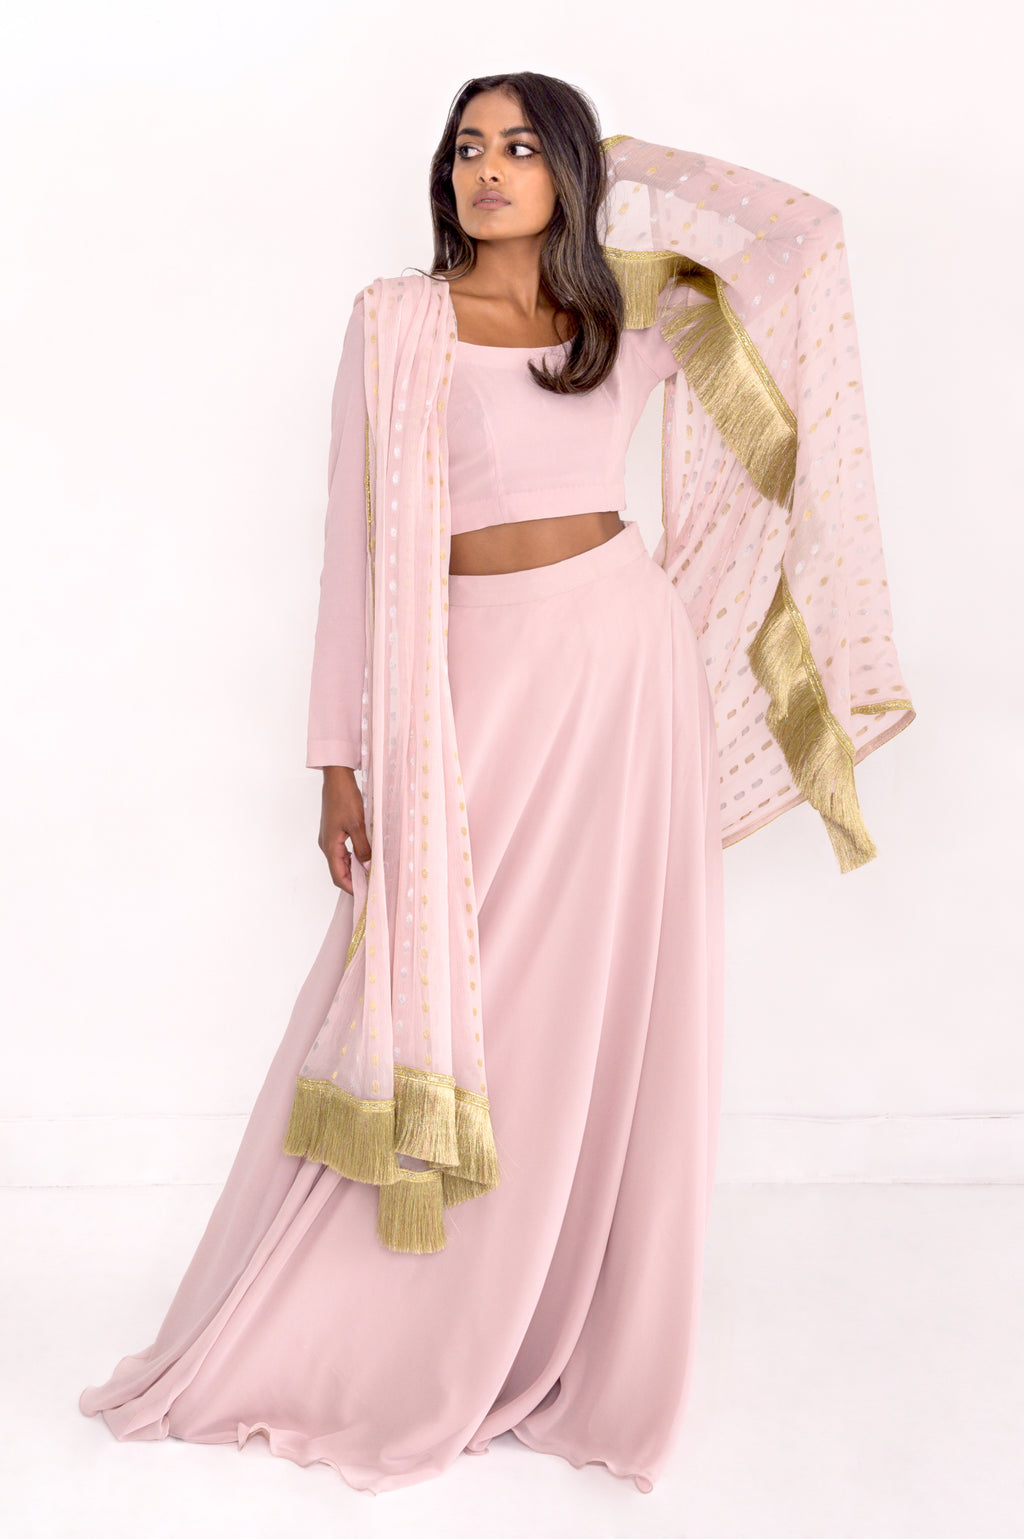 Pink Lehenga set with gold fringe. Beautiful Indian bridal dress.